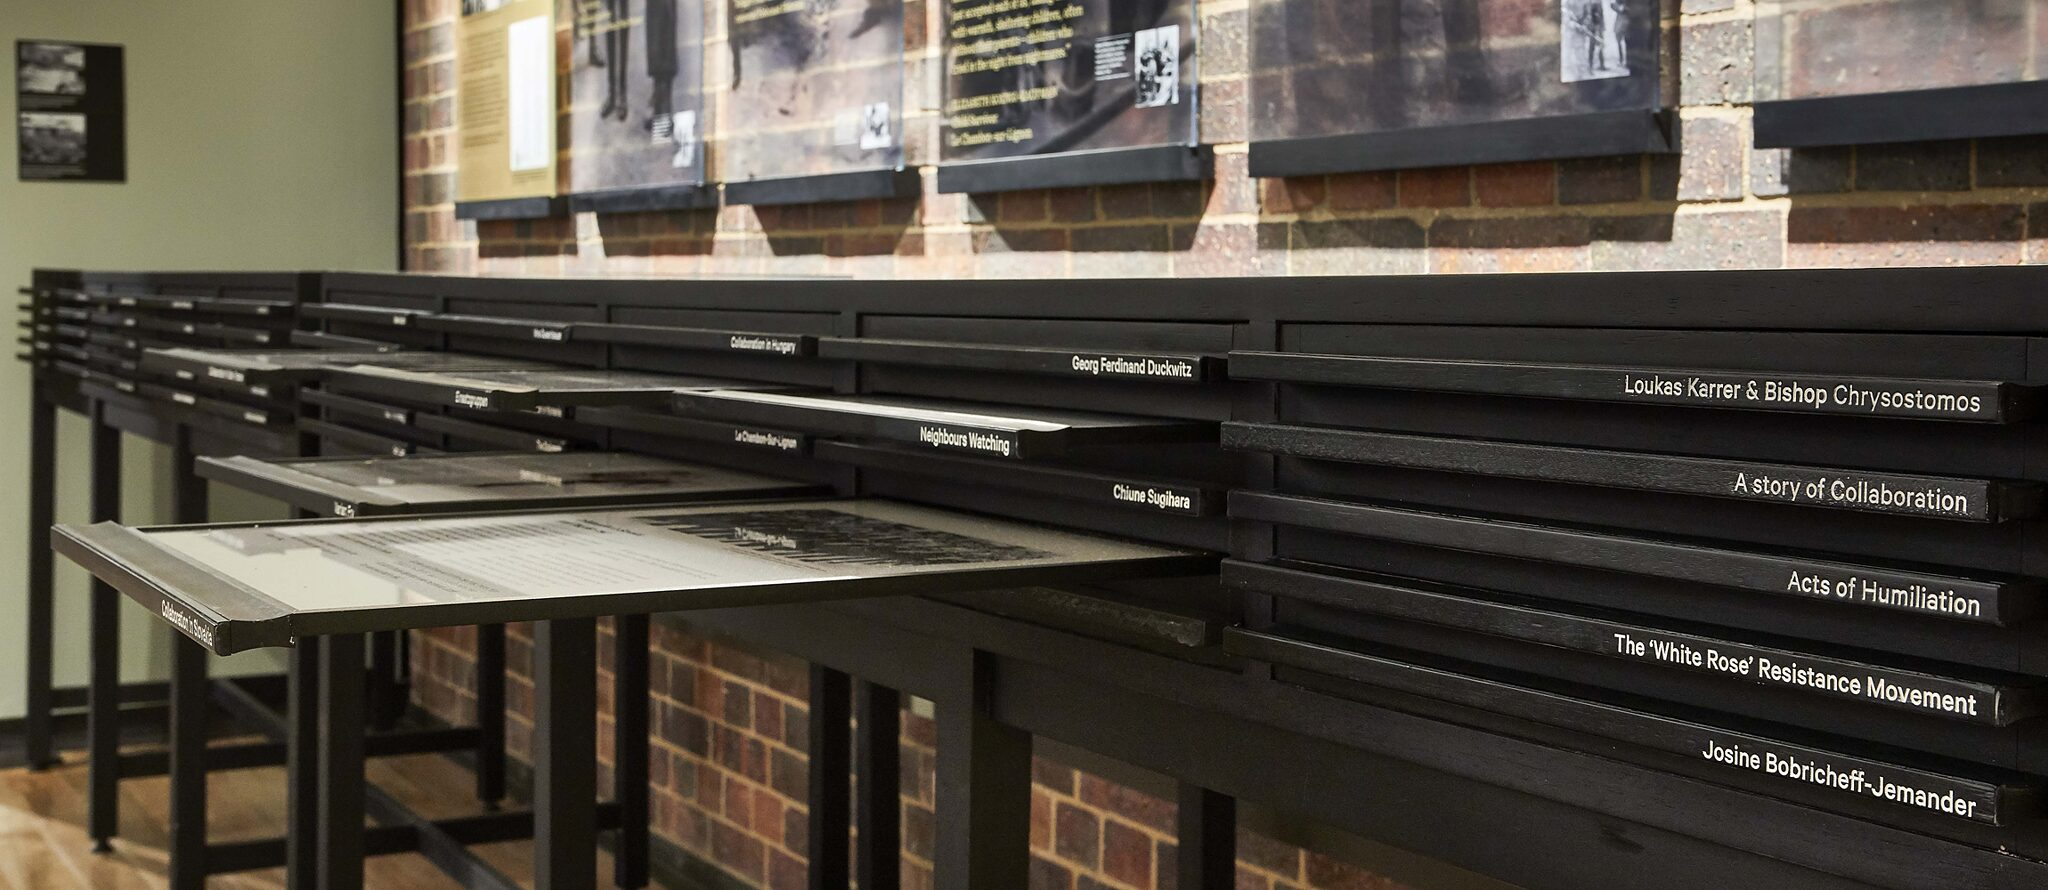 Choices and Dilemmas – 50 drawers tell stories of perpetrators, bystanders, collaborators, resisters and rescuers.